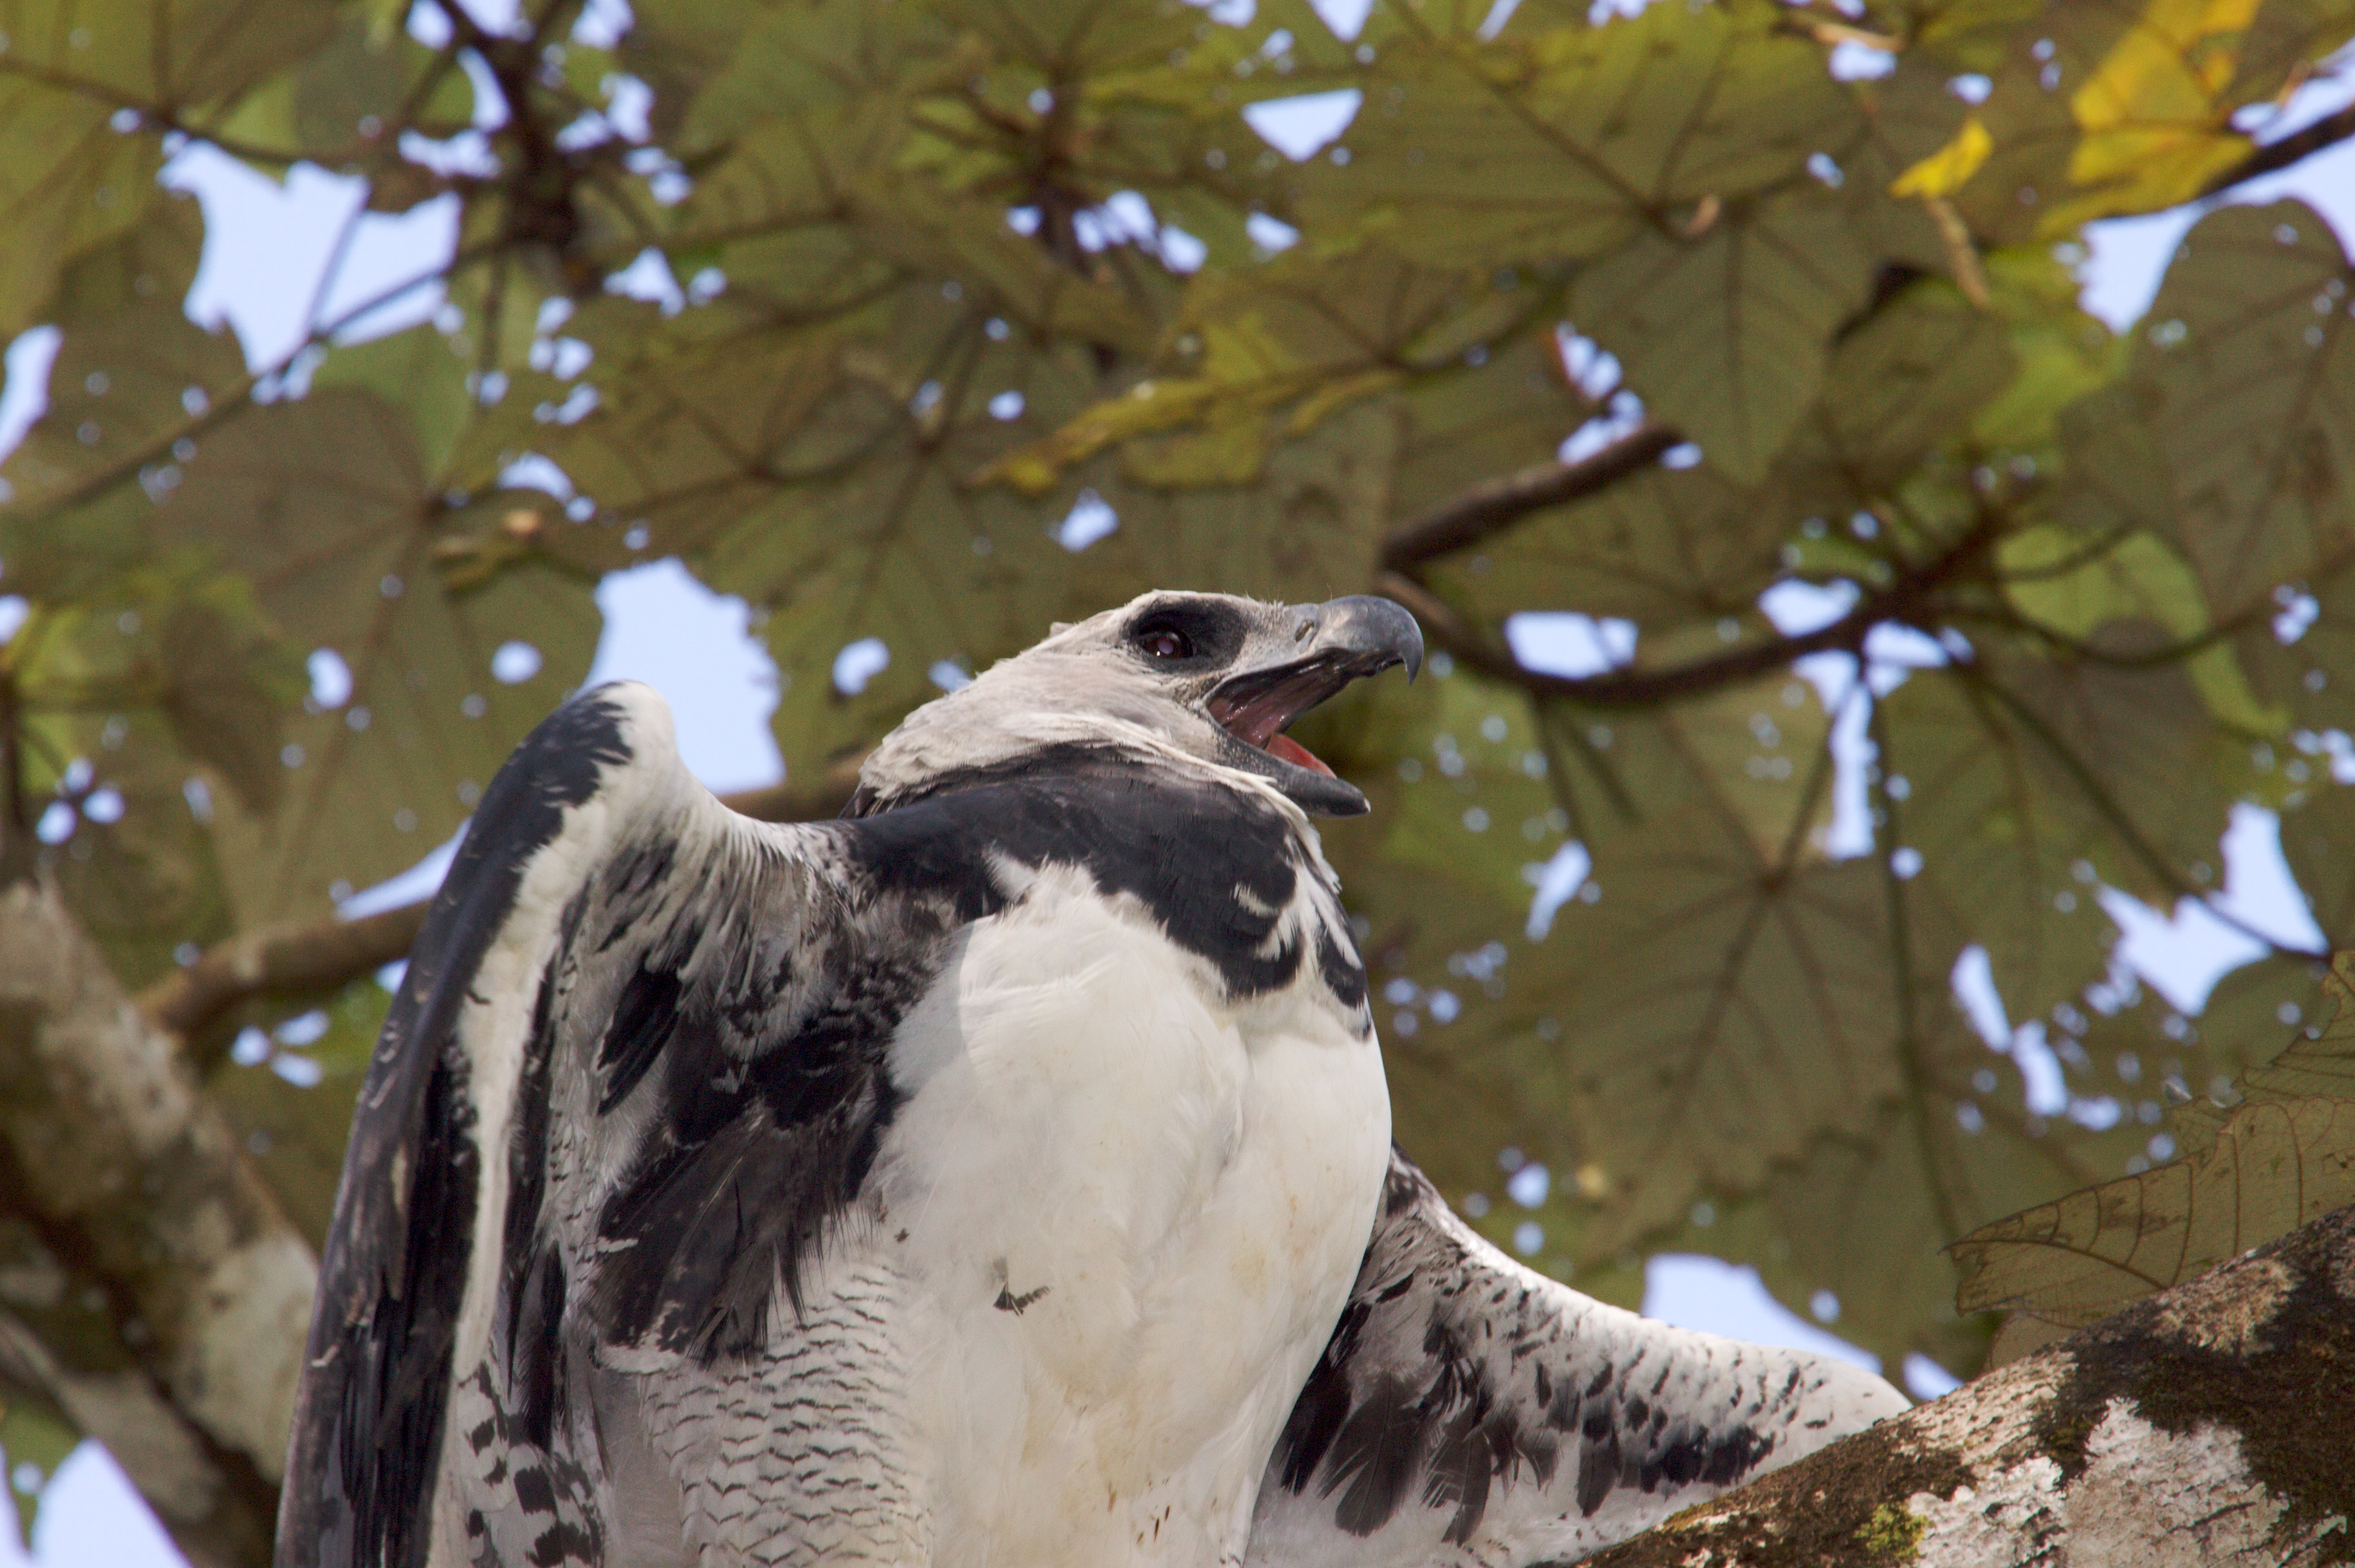 Harpy eagle 4k ultra hd wallpaper and background image - Harpy eagle hd wallpaper ...